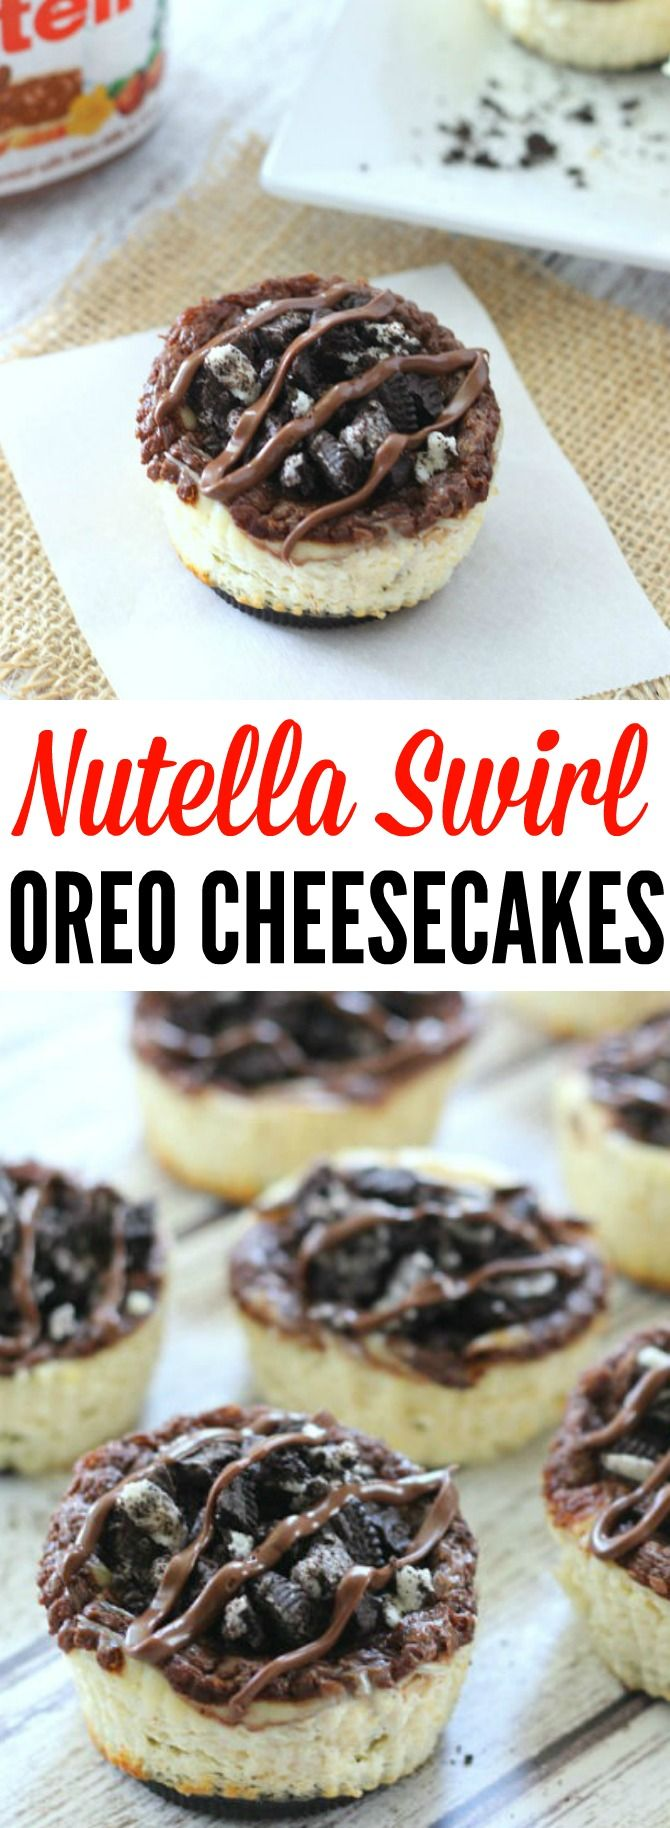 Miniature cheesecakes made with an Oreo crust, and a creamy cheesecake filling that's been swirled with a dollop of irresistible Nutella. They are topped off with more crushed Oreos and a drizzle of warm Nutella on top!